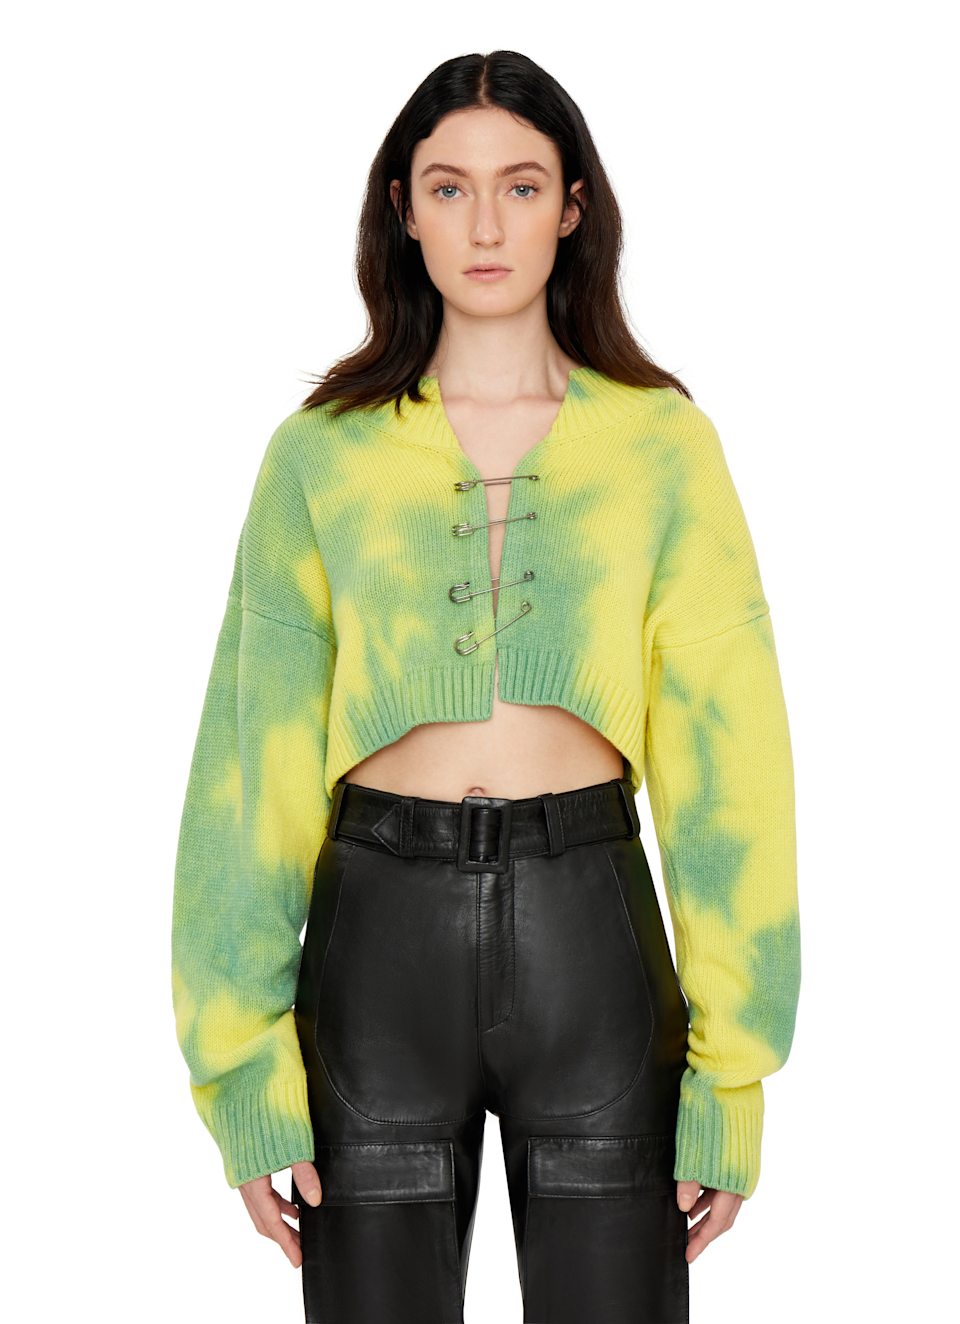 """<br><br><strong>Danielle Guizio</strong> Tie-Dye Knit Safety Pin Sweater, $, available at <a href=""""https://go.skimresources.com/?id=30283X879131&url=https%3A%2F%2Fwww.danielleguiziony.com%2Fwomen%2Ftie-dye-knit-safety-pin-sweater"""" rel=""""nofollow noopener"""" target=""""_blank"""" data-ylk=""""slk:Danielle Guizio"""" class=""""link rapid-noclick-resp"""">Danielle Guizio</a>"""